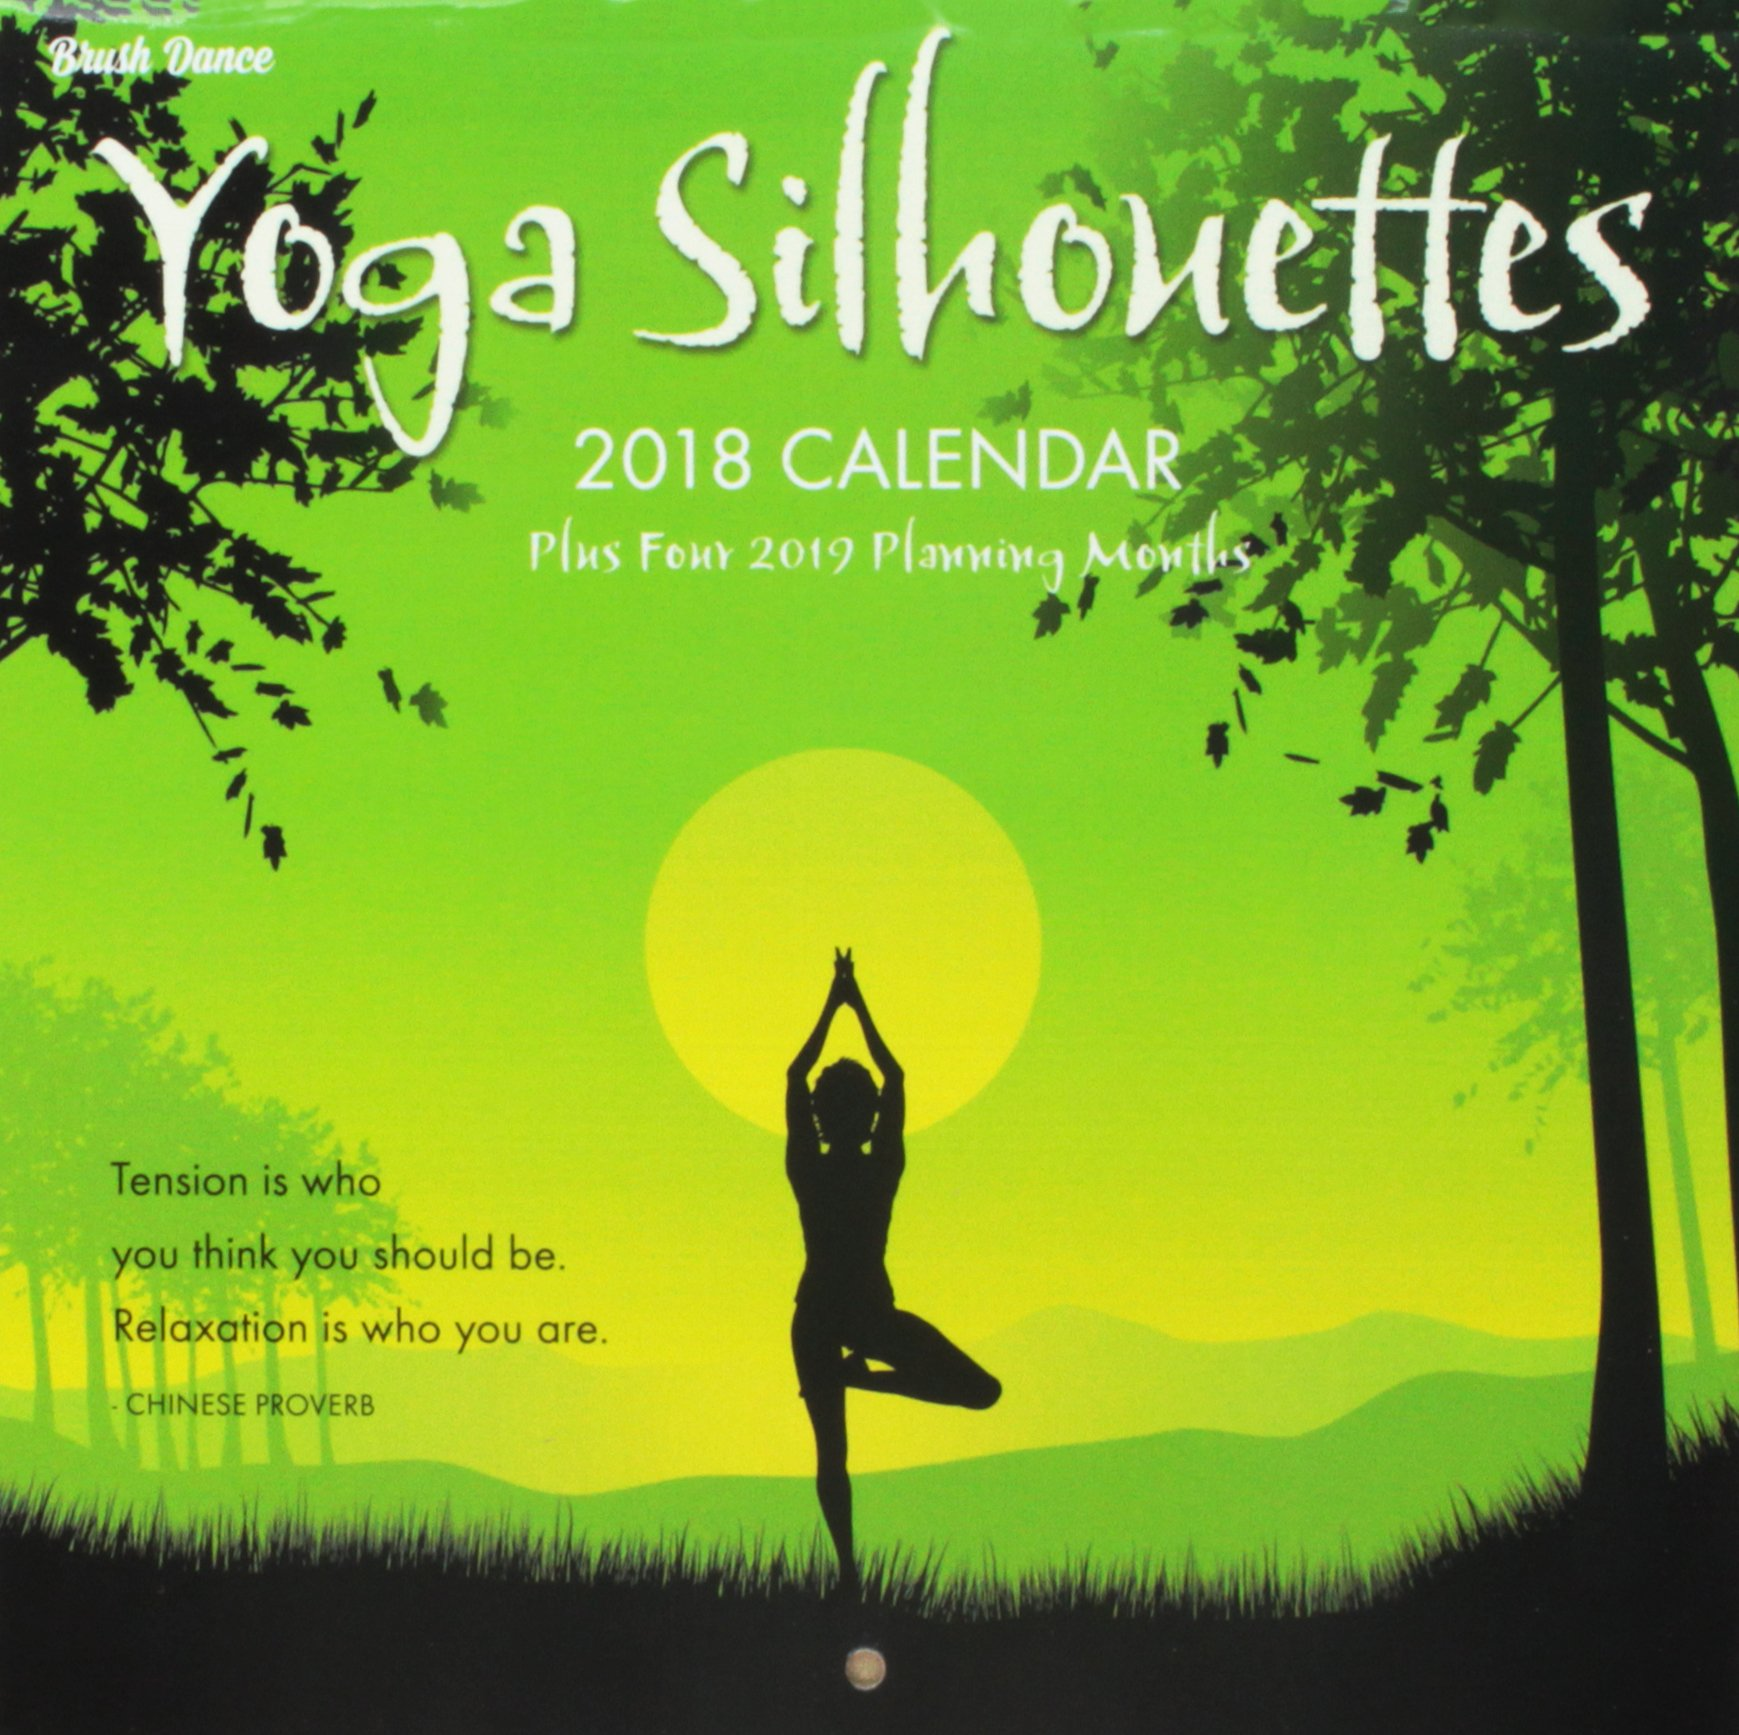 Yoga Silhouettes 2018 Calendar: Amazon.es: Inc. Brush Dance ...